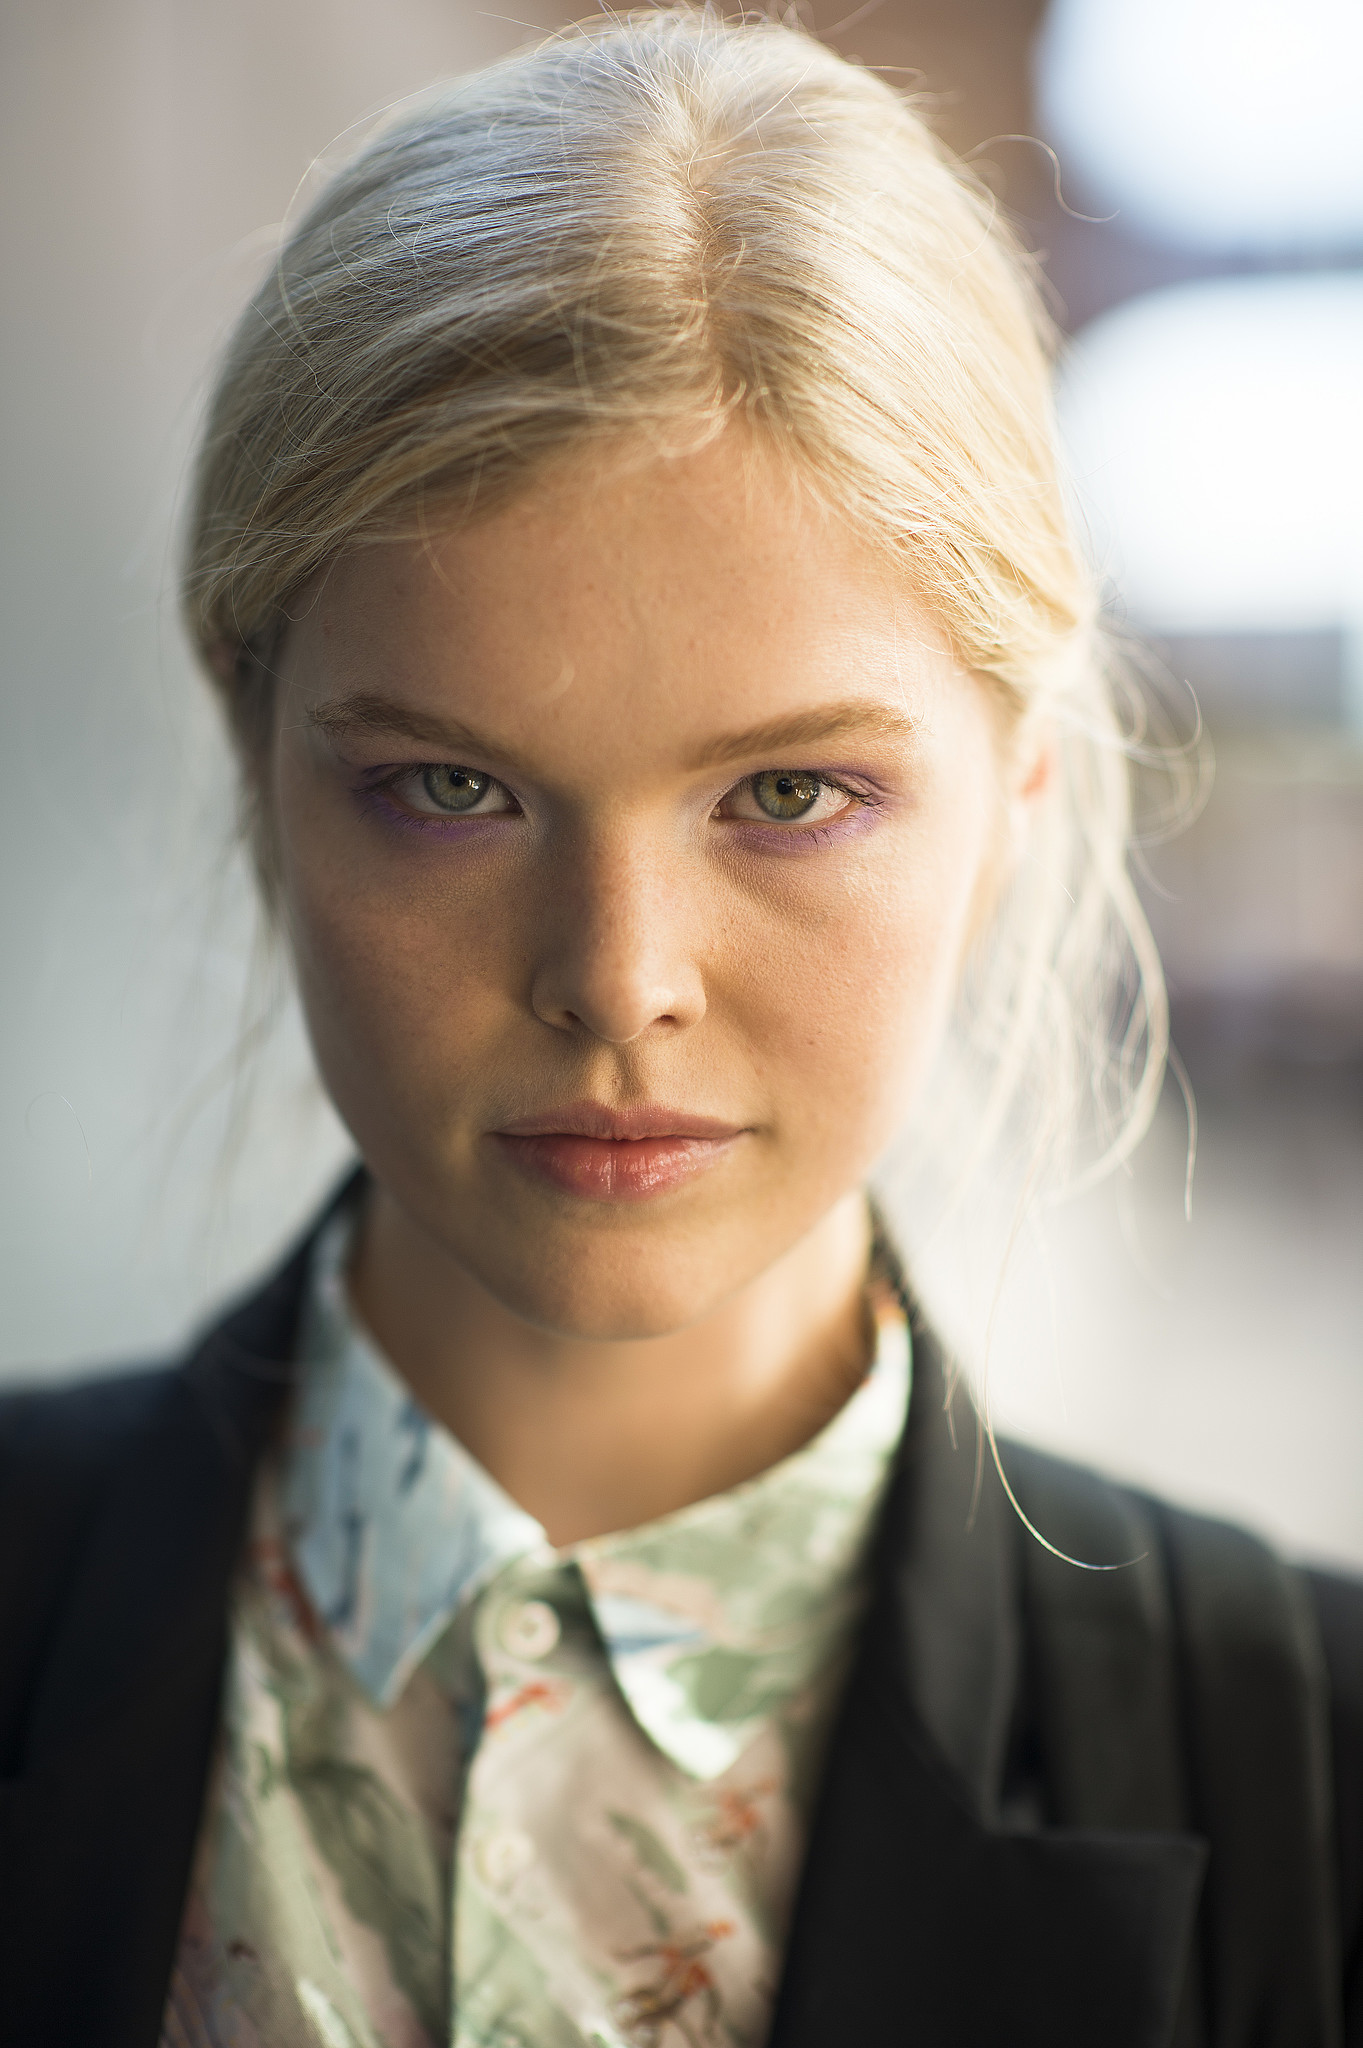 A peek of purple under the eyes looks darling on this model. Source: Le 21ème | Adam Katz Sinding